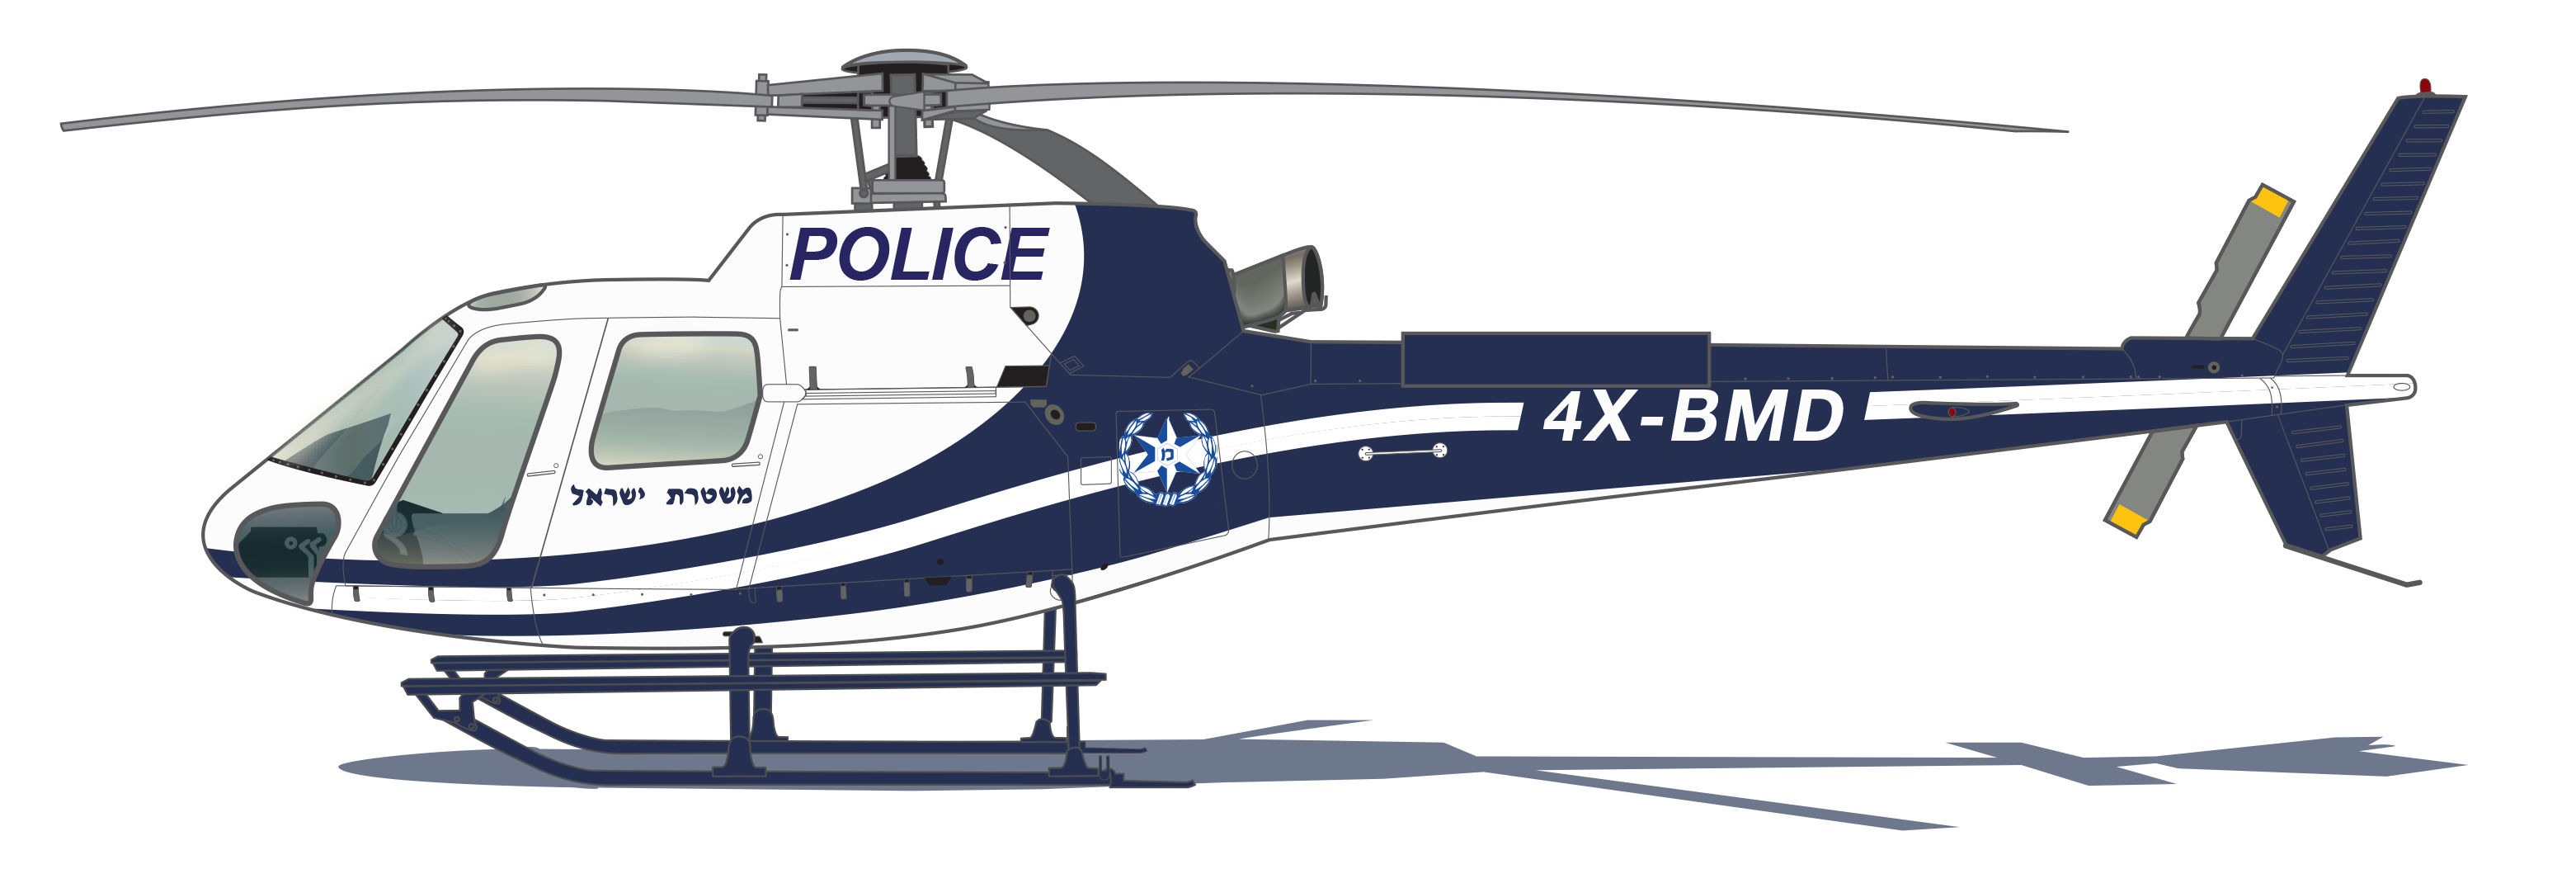 Helicopter clipart helicopter crash. Corporate press releases image